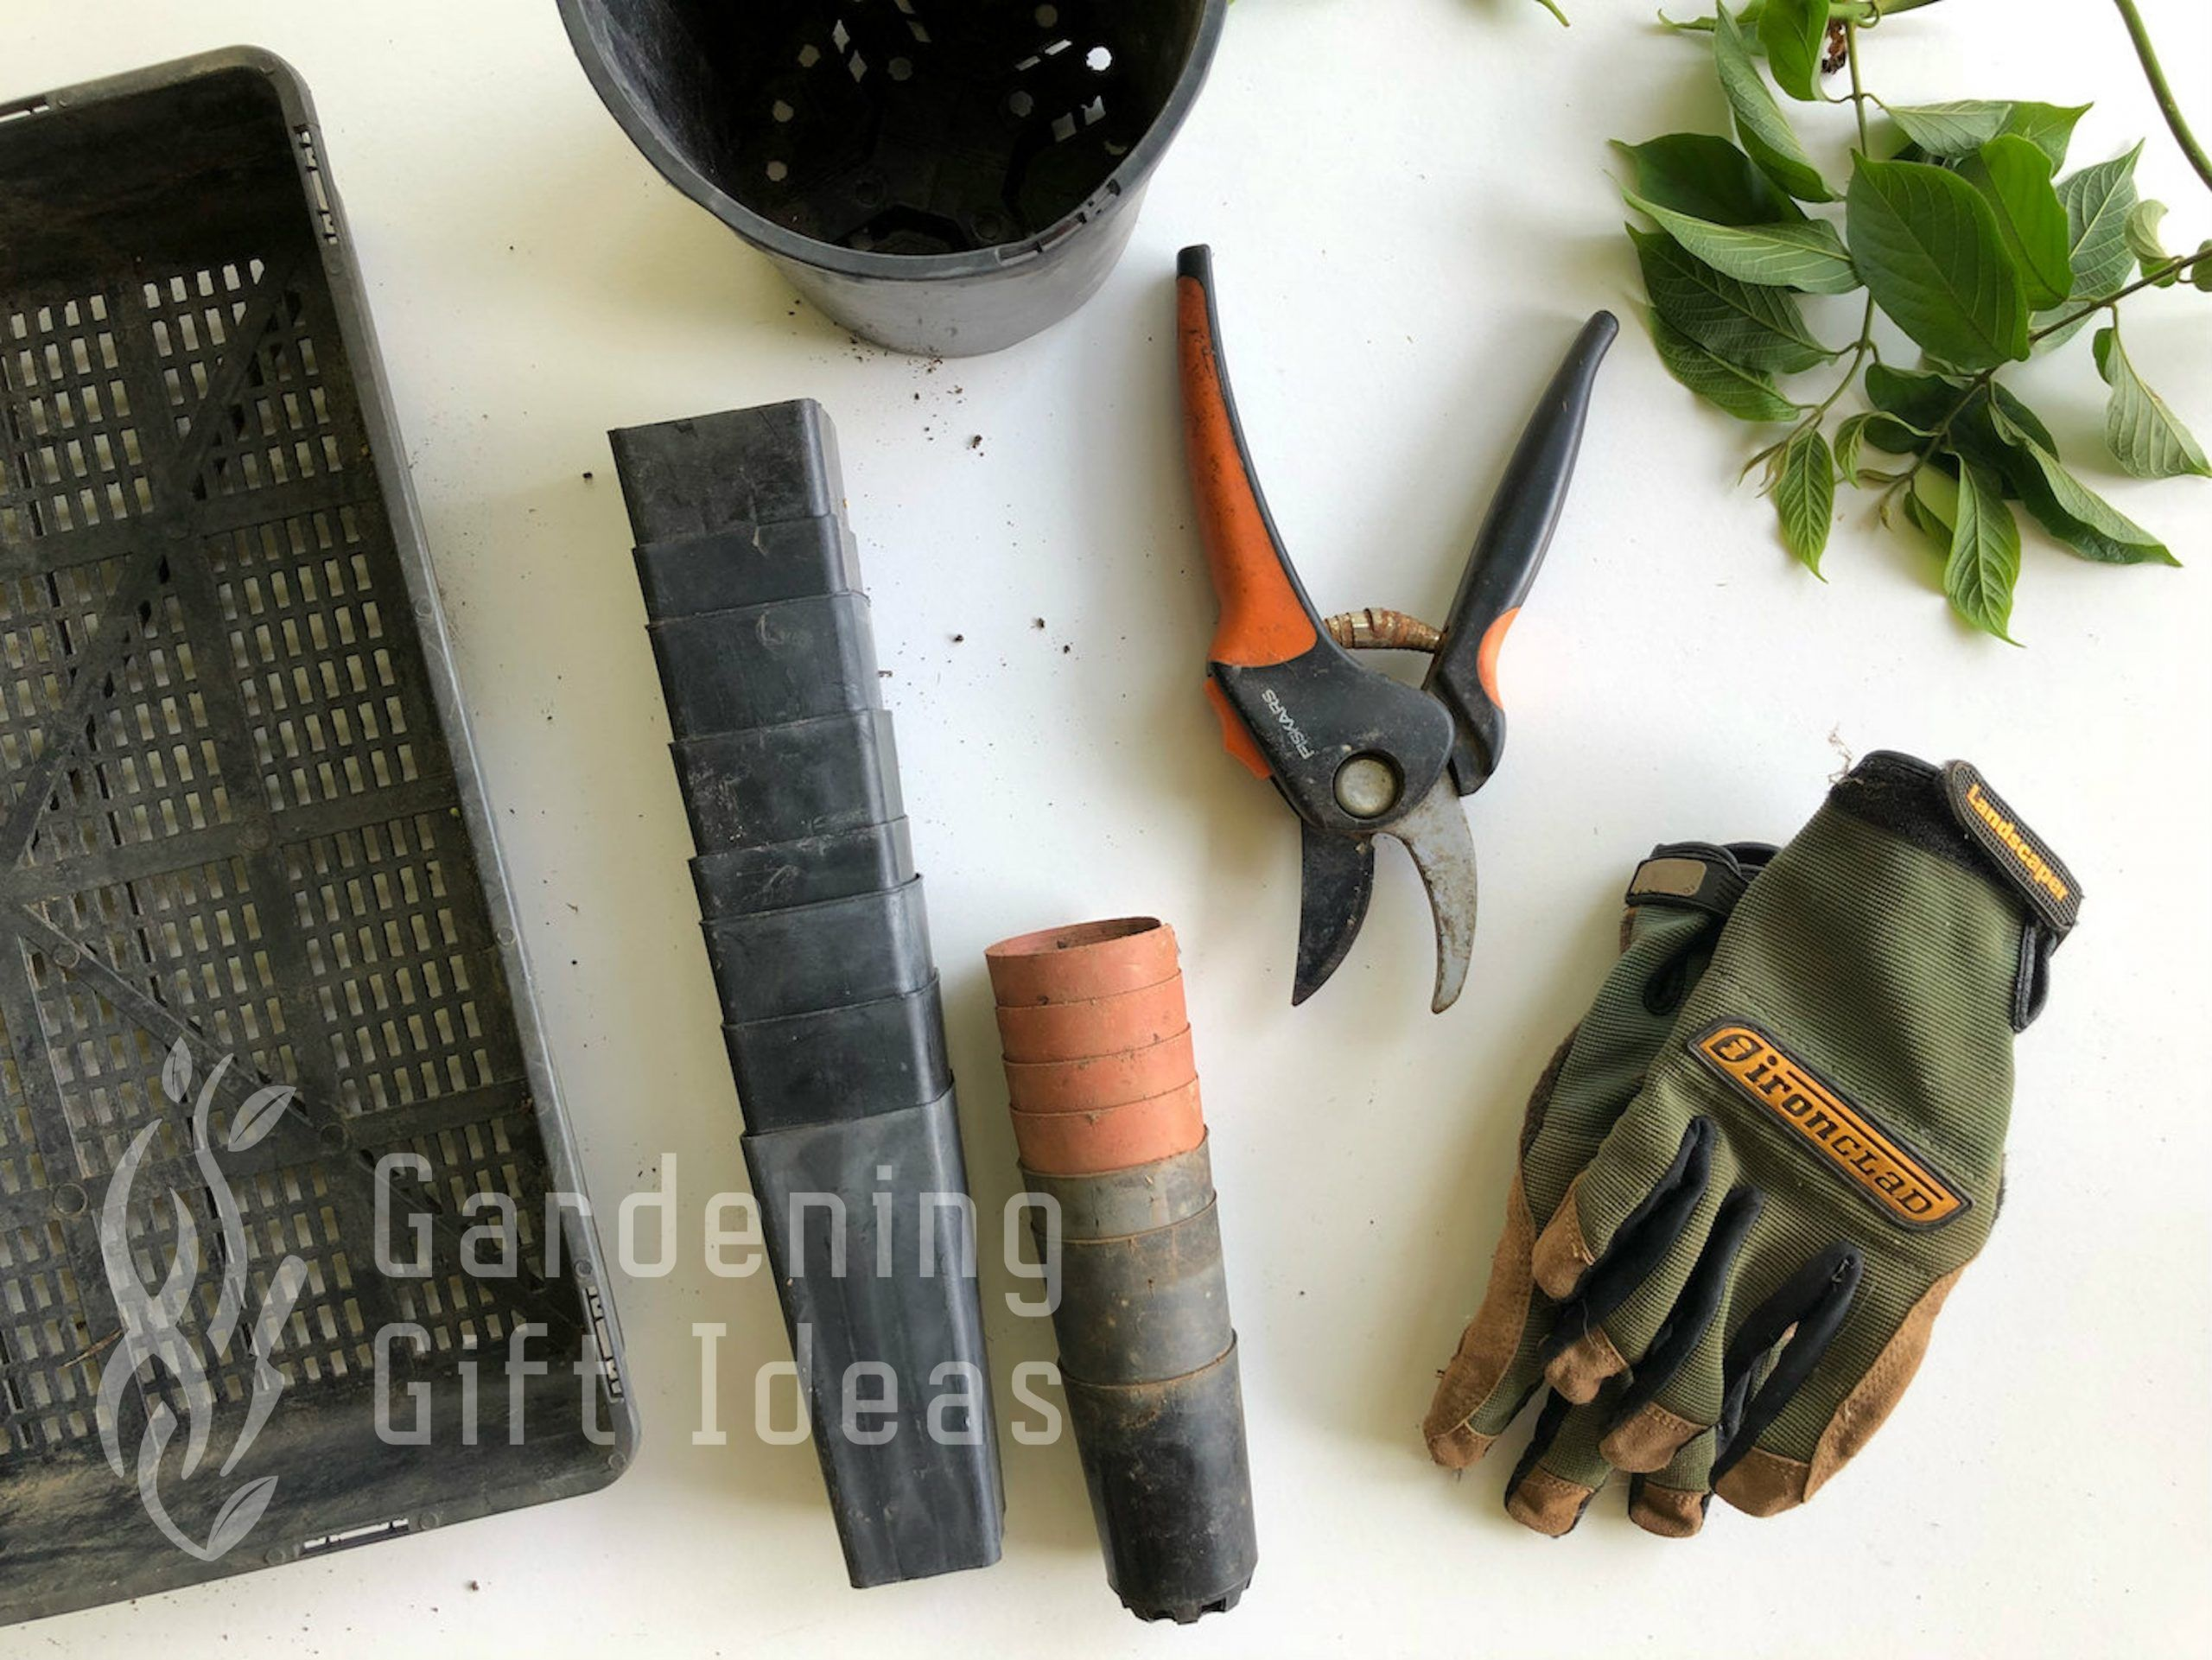 Best gardening gifts ideas